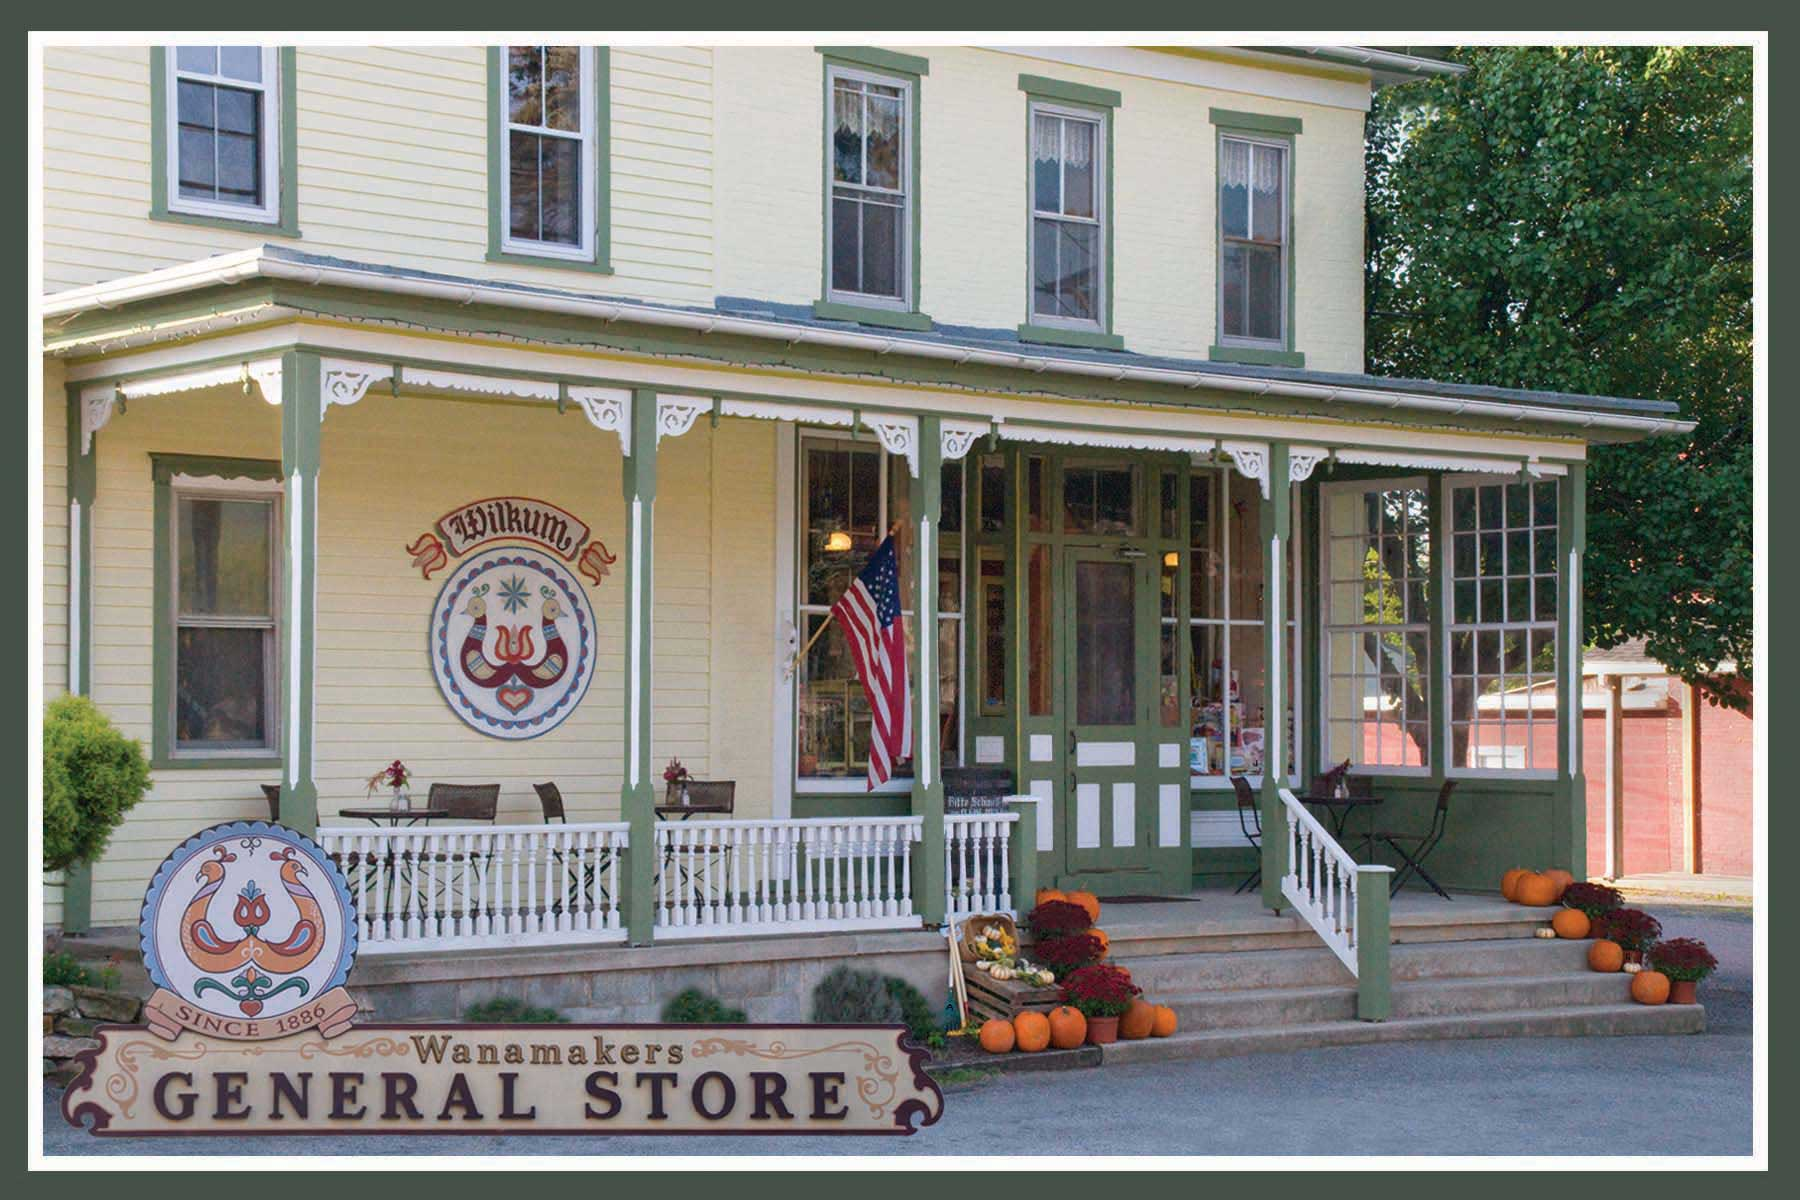 Wanamakers General Store